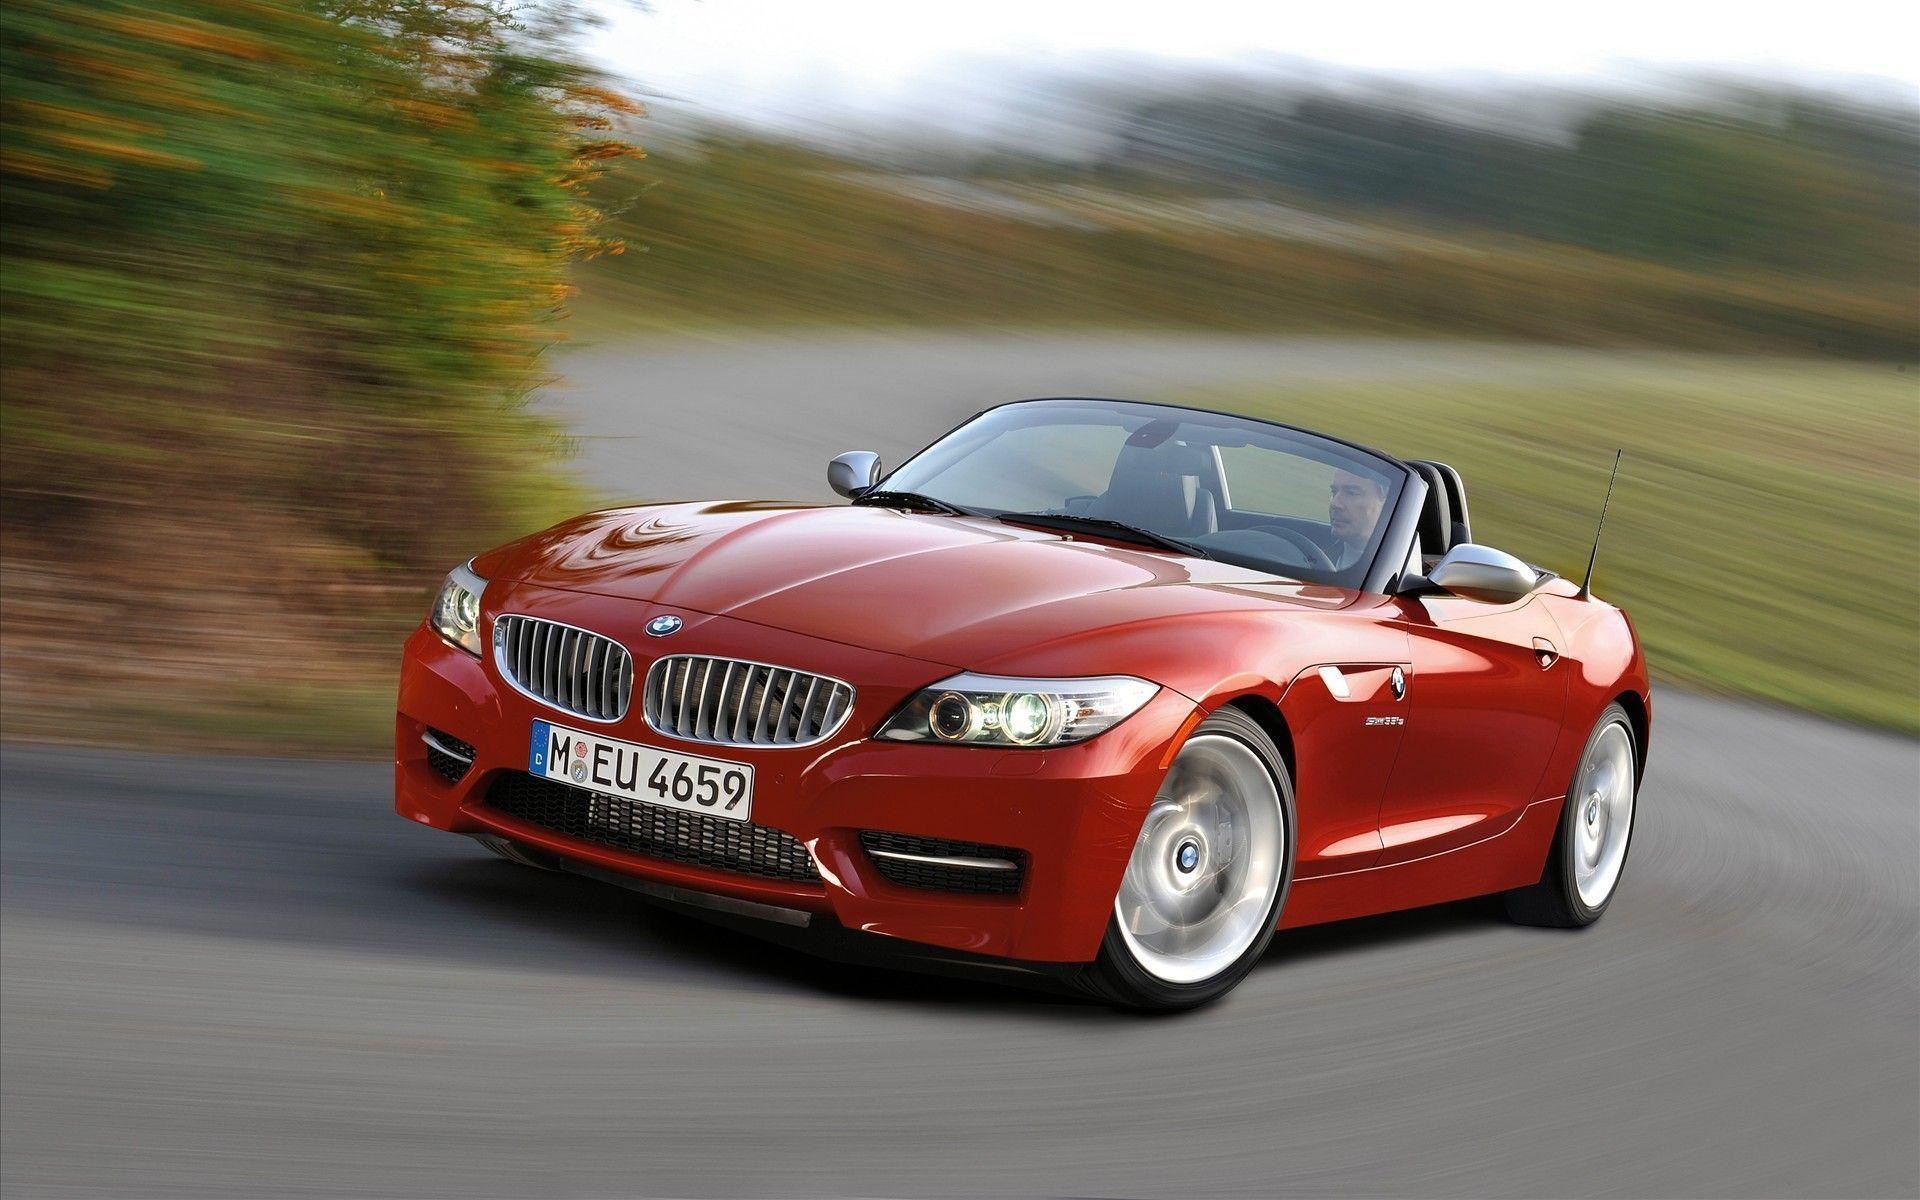 New BMW Z4 2011 Car Wallpapers | HD Wallpapers